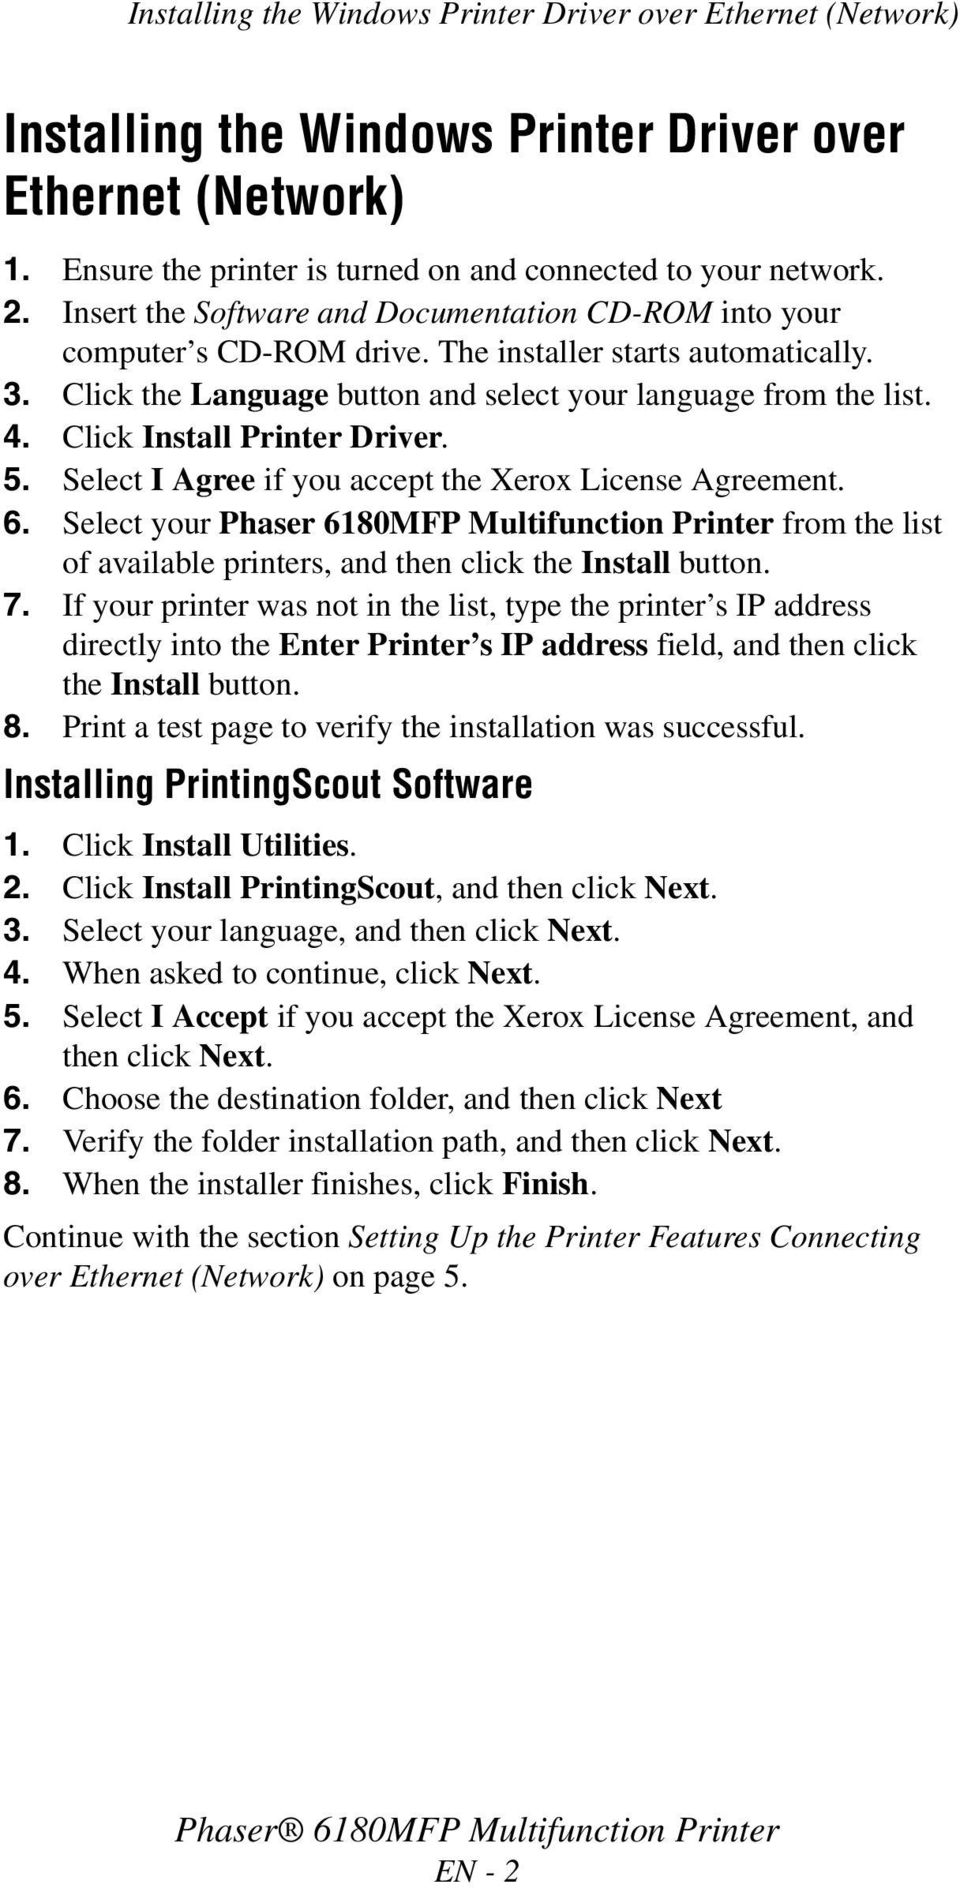 Click Install Printer Driver. 5. Select I Agree if you accept the Xerox License Agreement. 6.